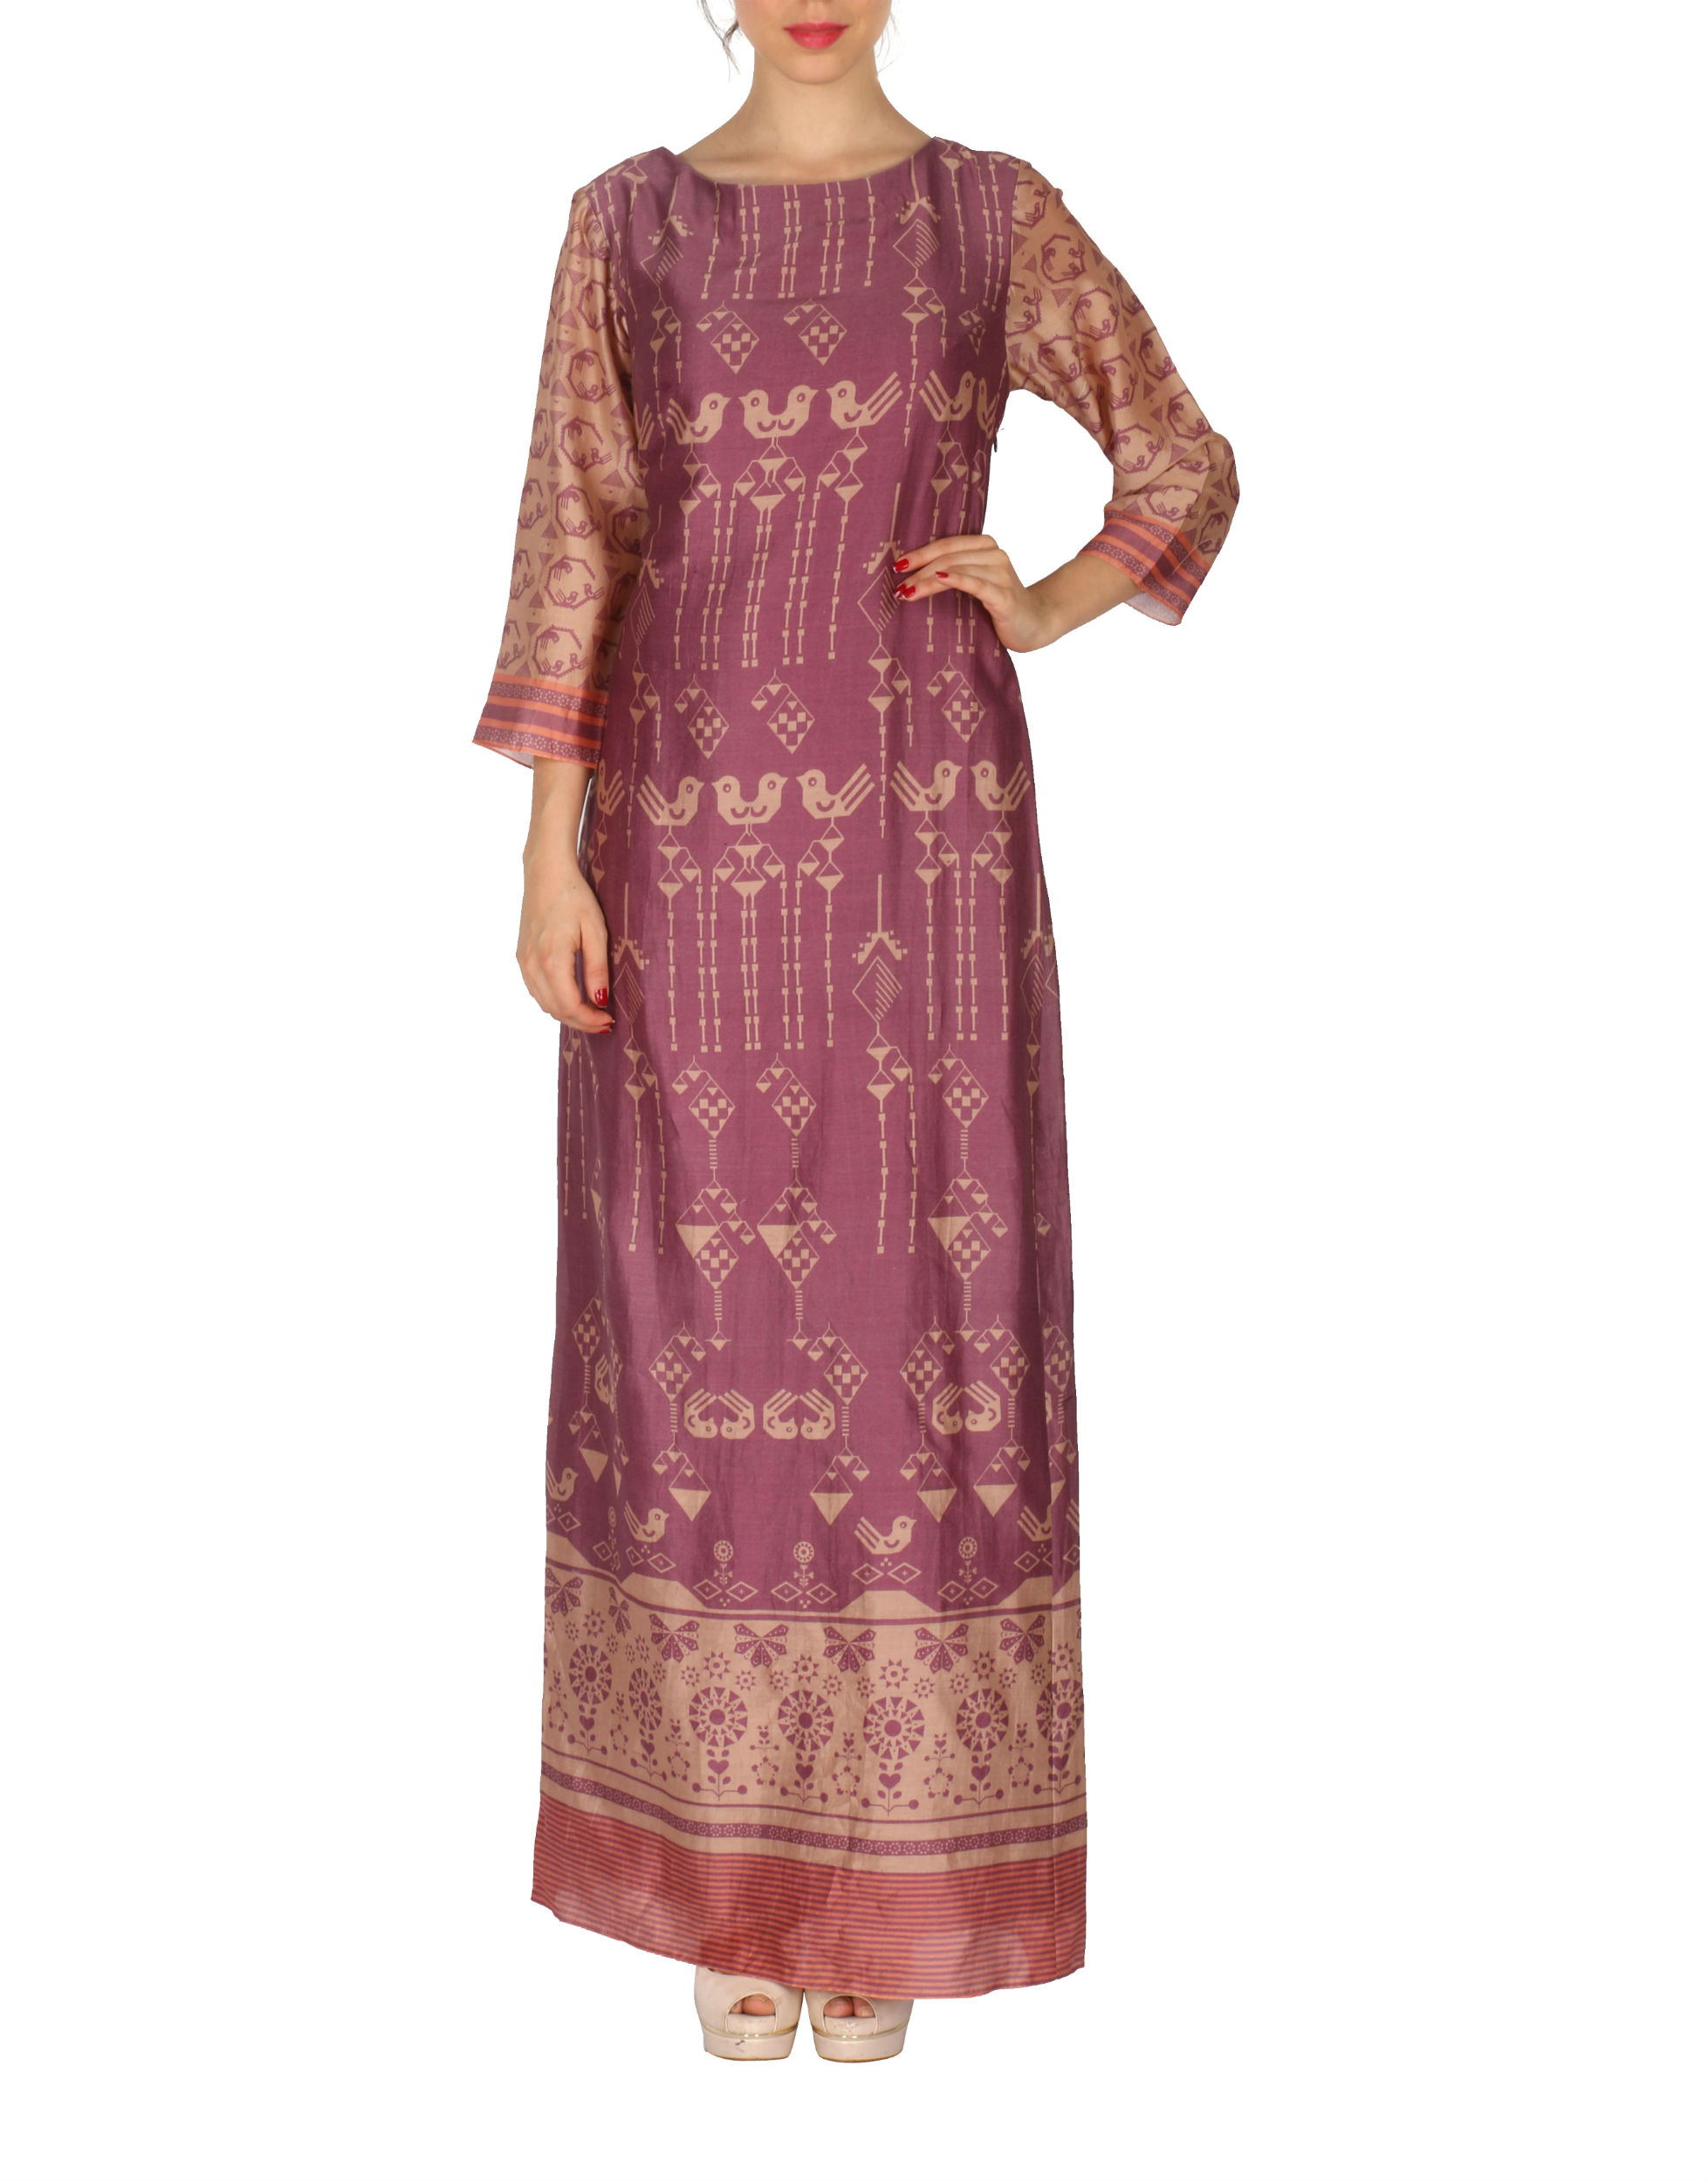 Long dress in marsala and beige